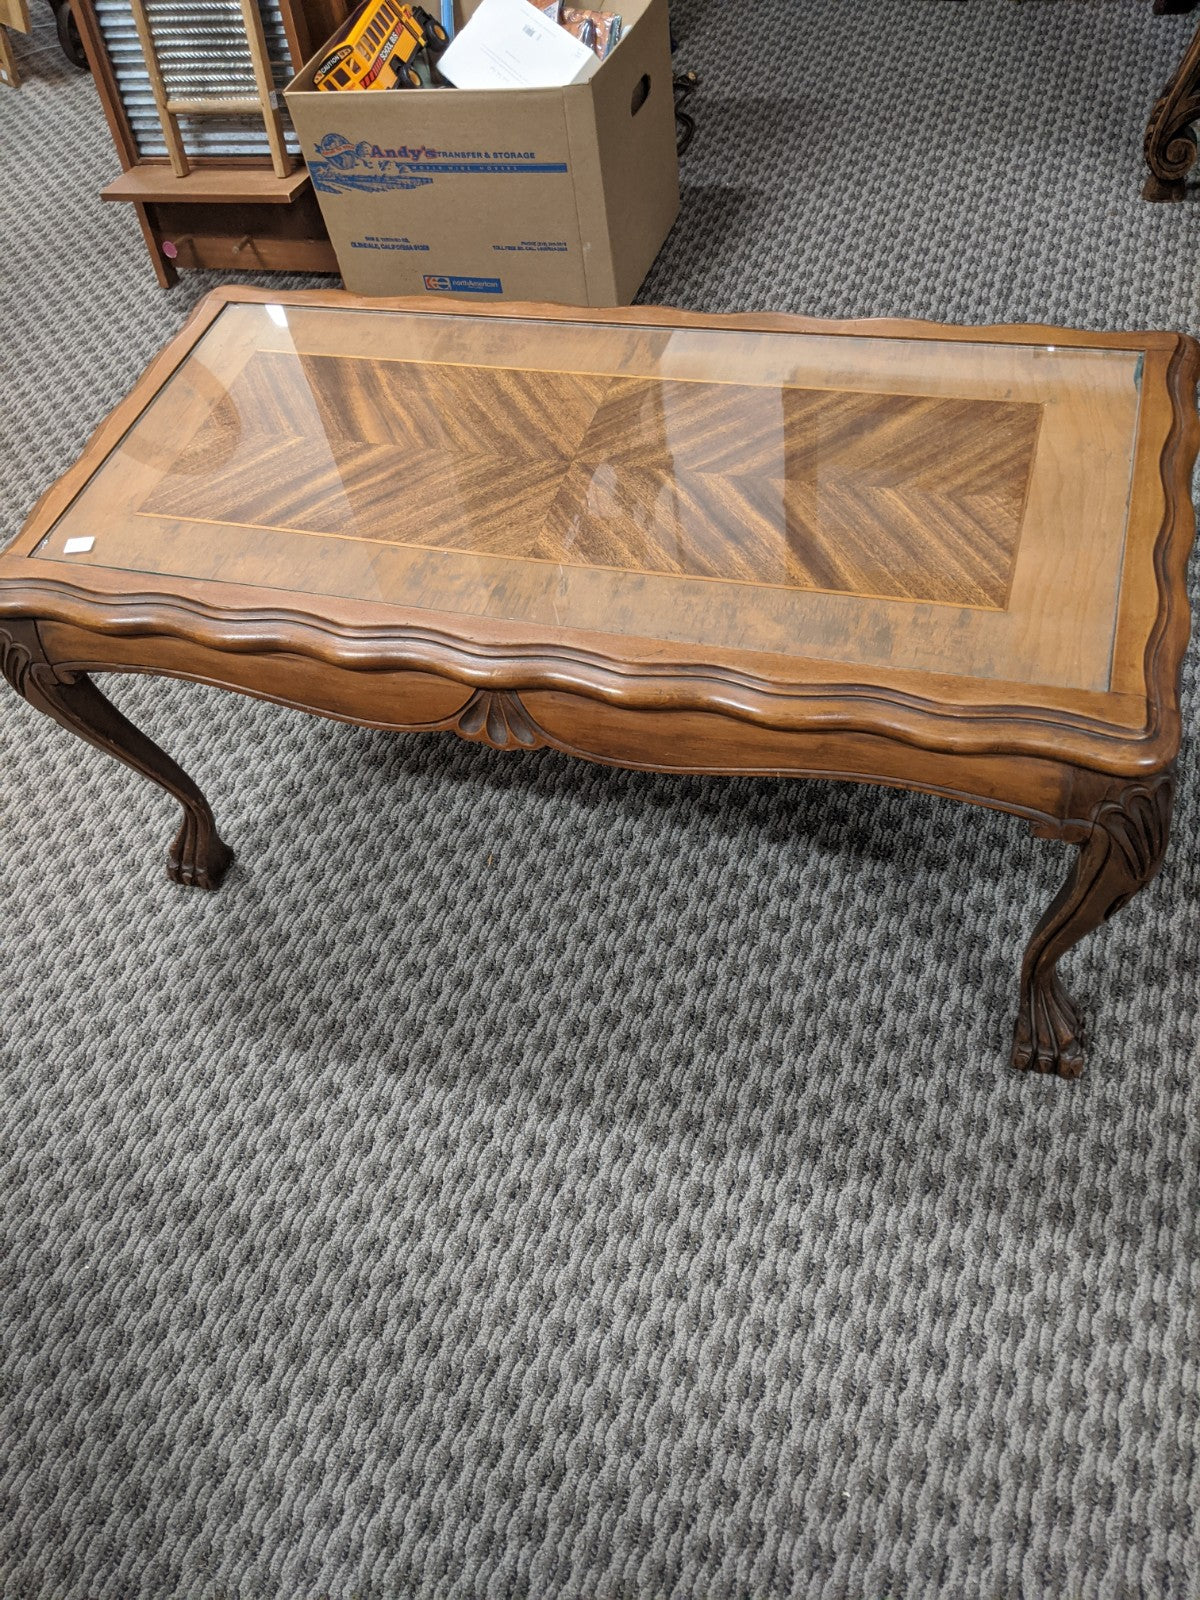 Vintage Claw-foot Coffee Table w herringbone veneer